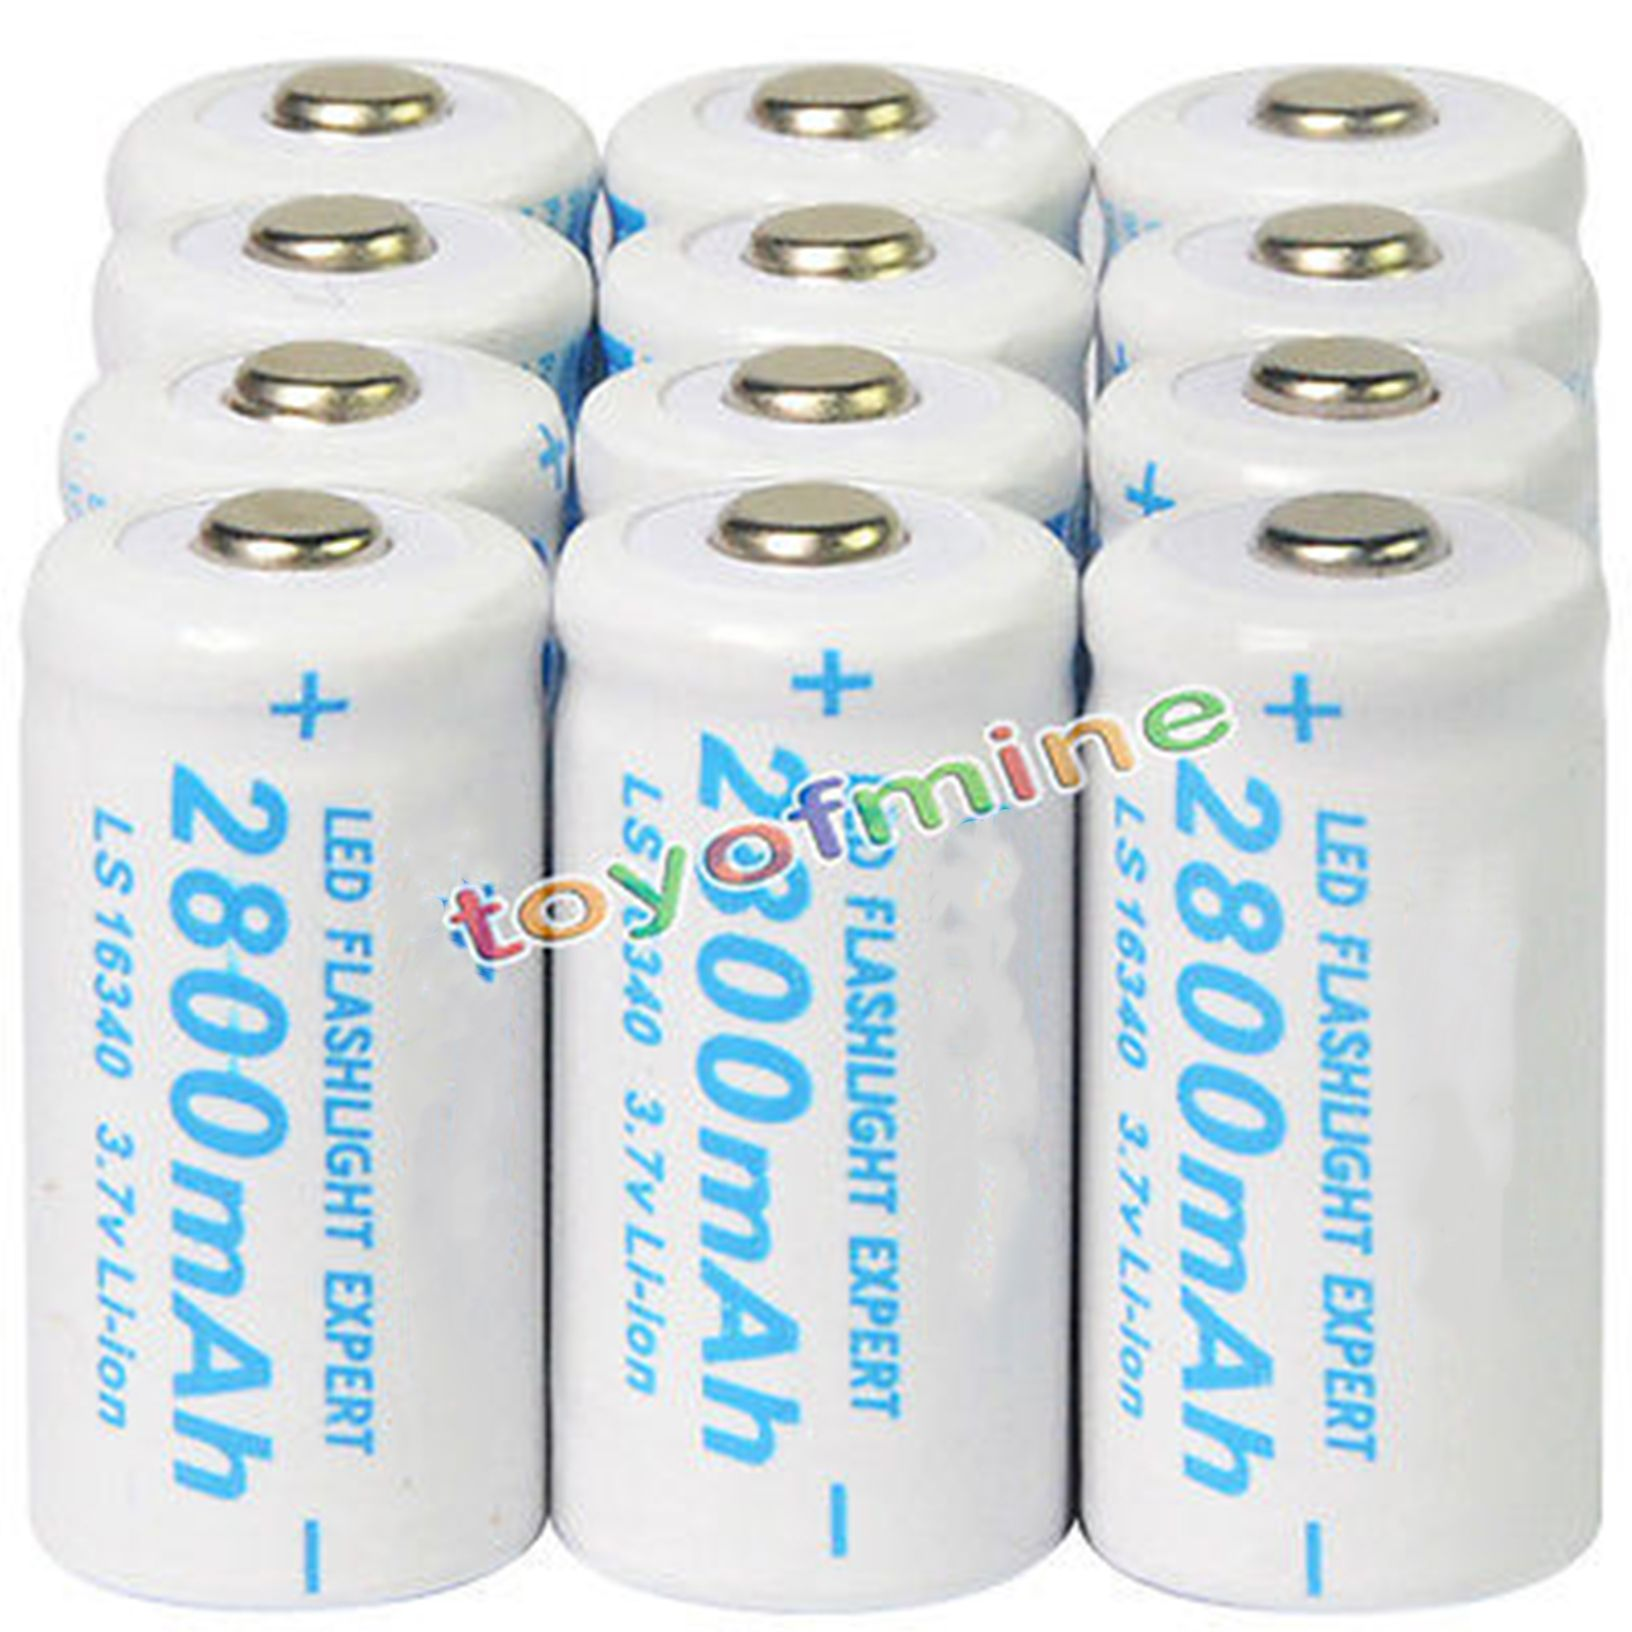 2-50pcs Lot 2800mAh CR123A 123A CR123 16340 3.7V Li-Ion Rechargeable Battery For Torch